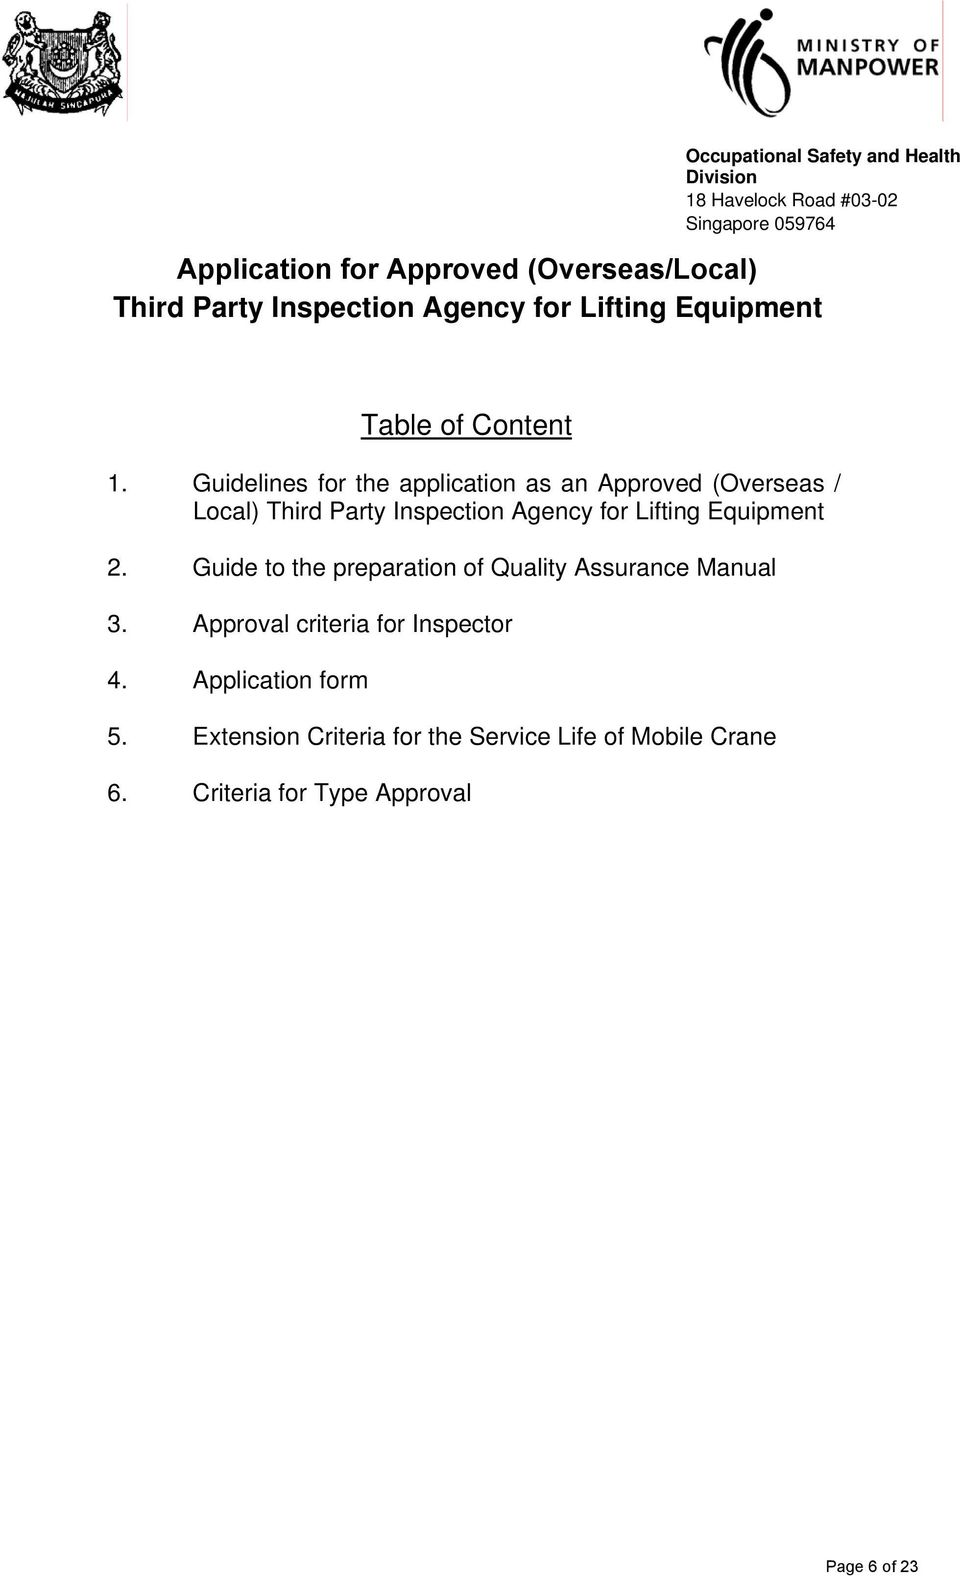 Guidelines for the application as an Approved (Overseas / Local) Third Party Inspection Agency for Lifting Equipment 2.